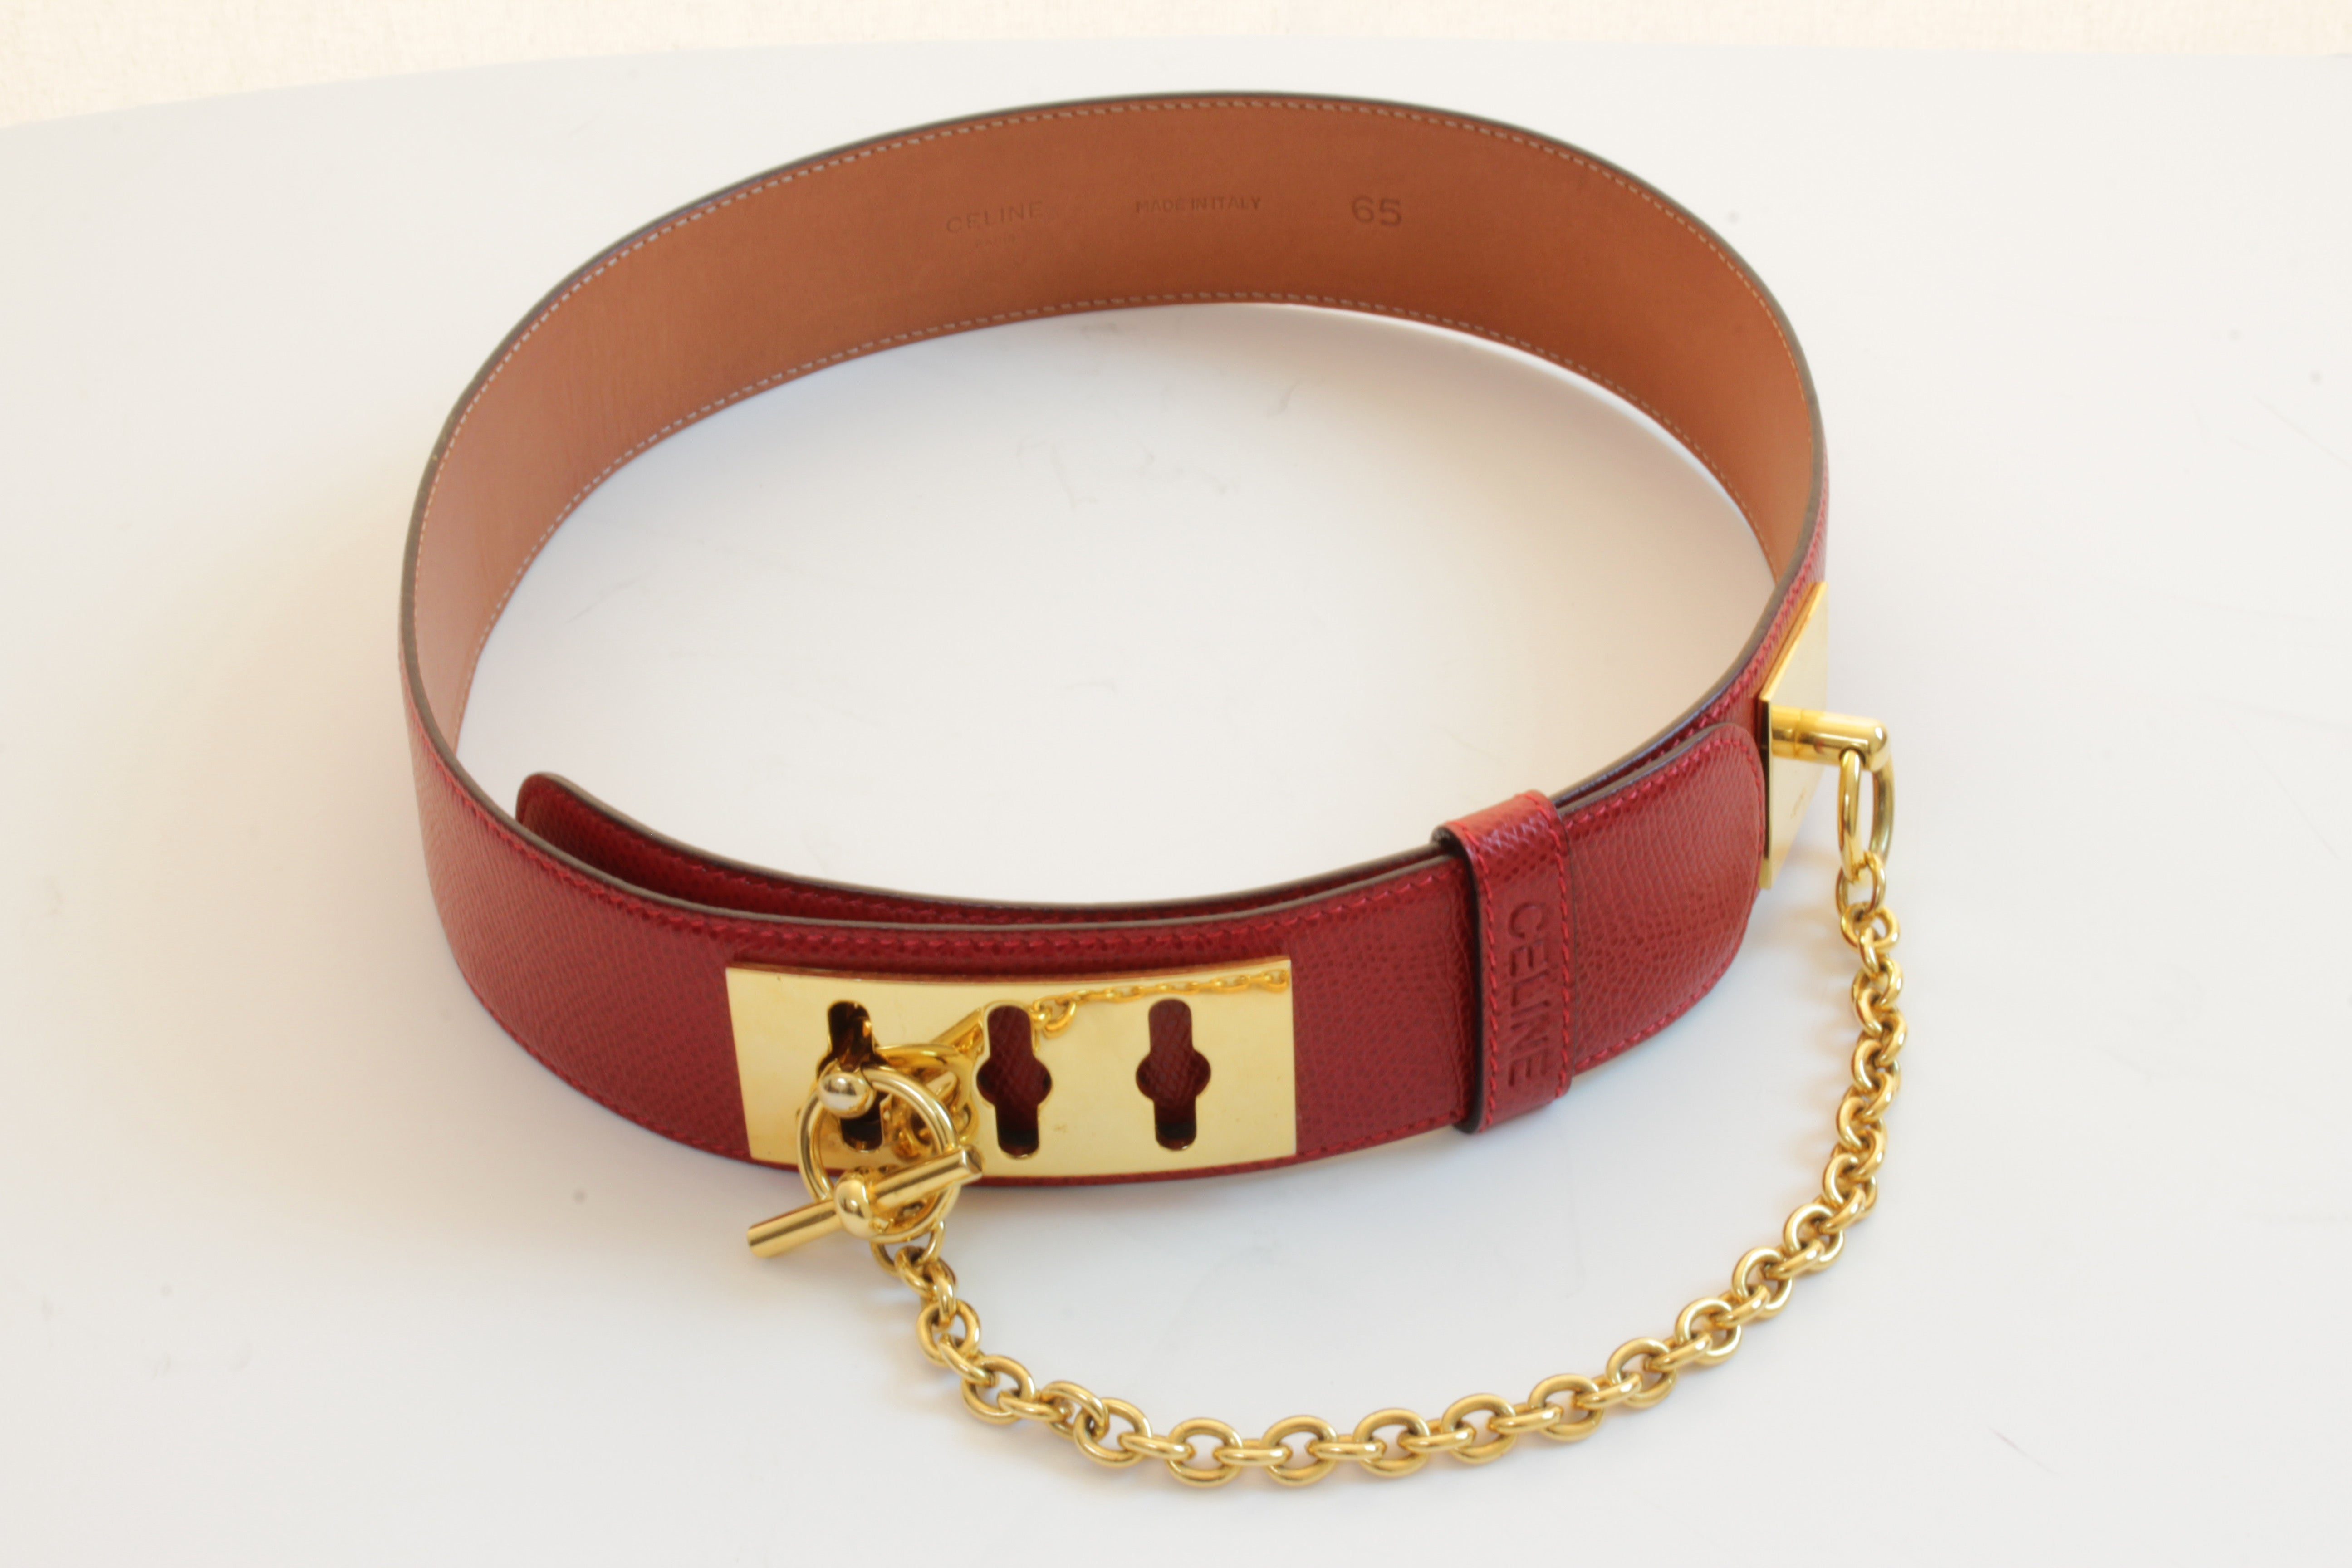 6b97de521aa Celine Paris Red Leather Belt with Gold Chain Detail Size 65cm at 1stdibs